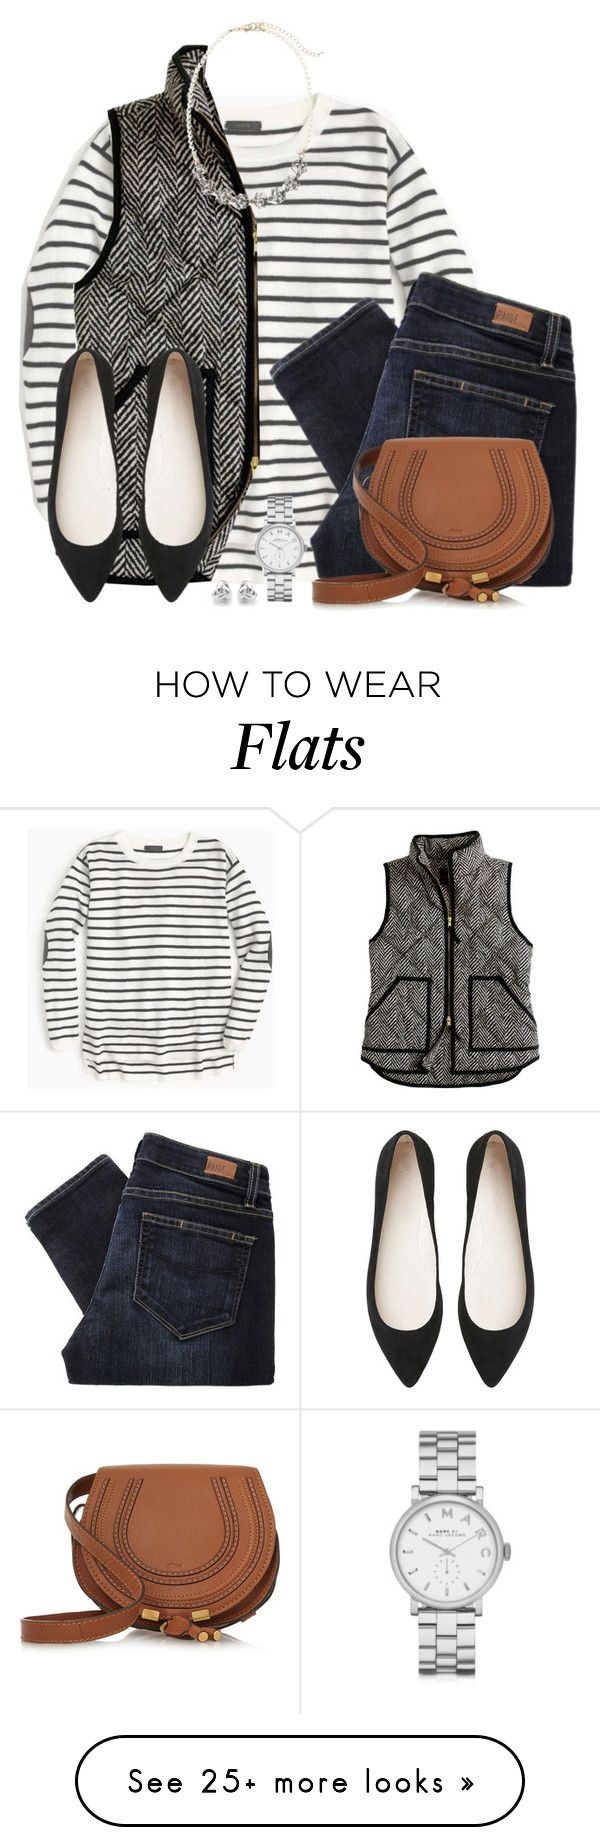 """Striped top, herringbone vest & pointed flats"" by steffiestaffie on Polyvore featuring J.Crew, Paige Denim, Sole Society, Chloé, Witchery, Marc by Marc Jacobs and Georgini"